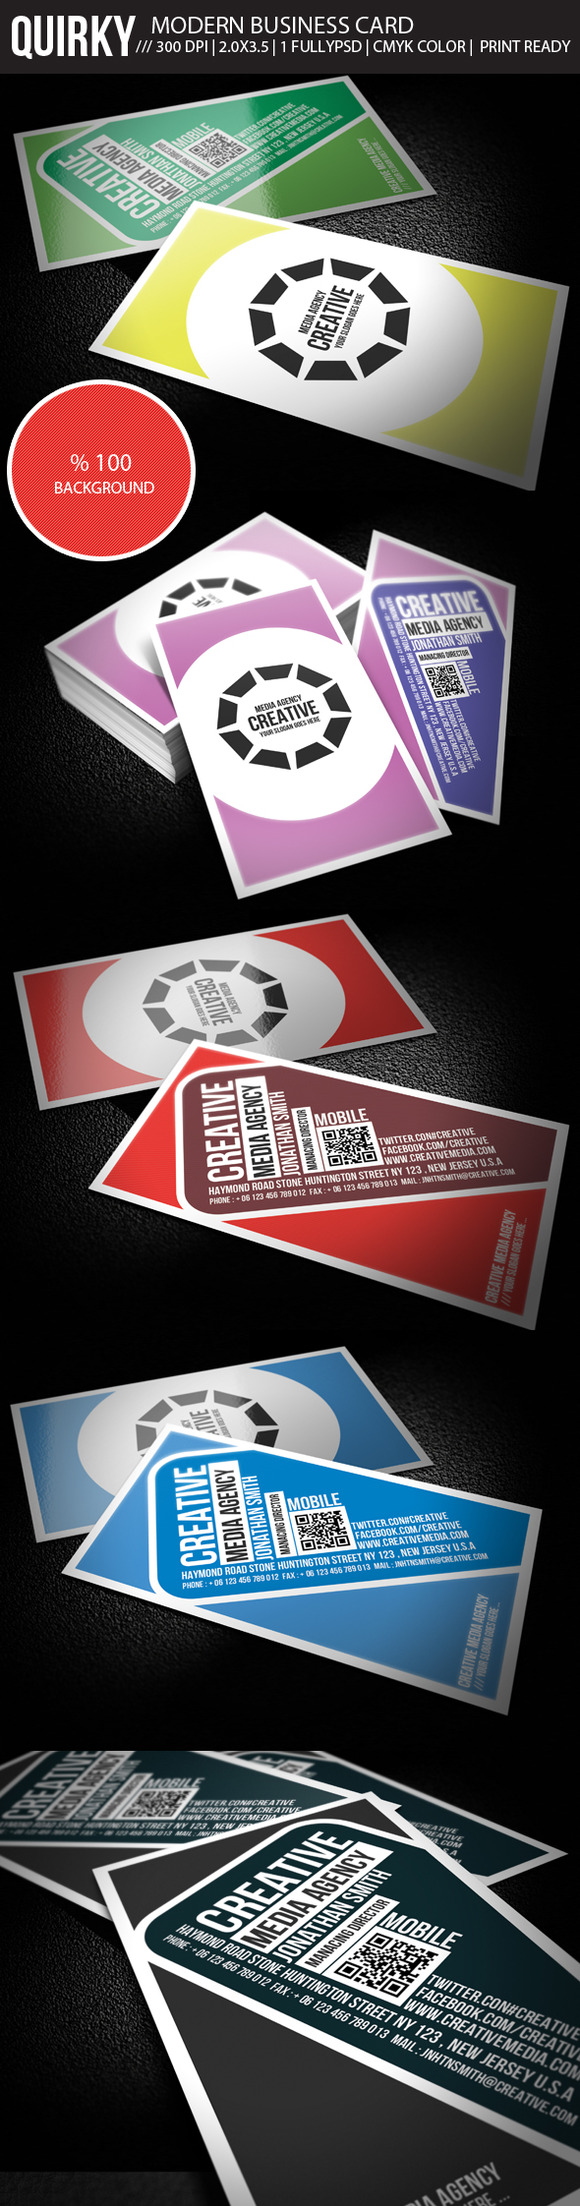 Quirky Creative Business Card